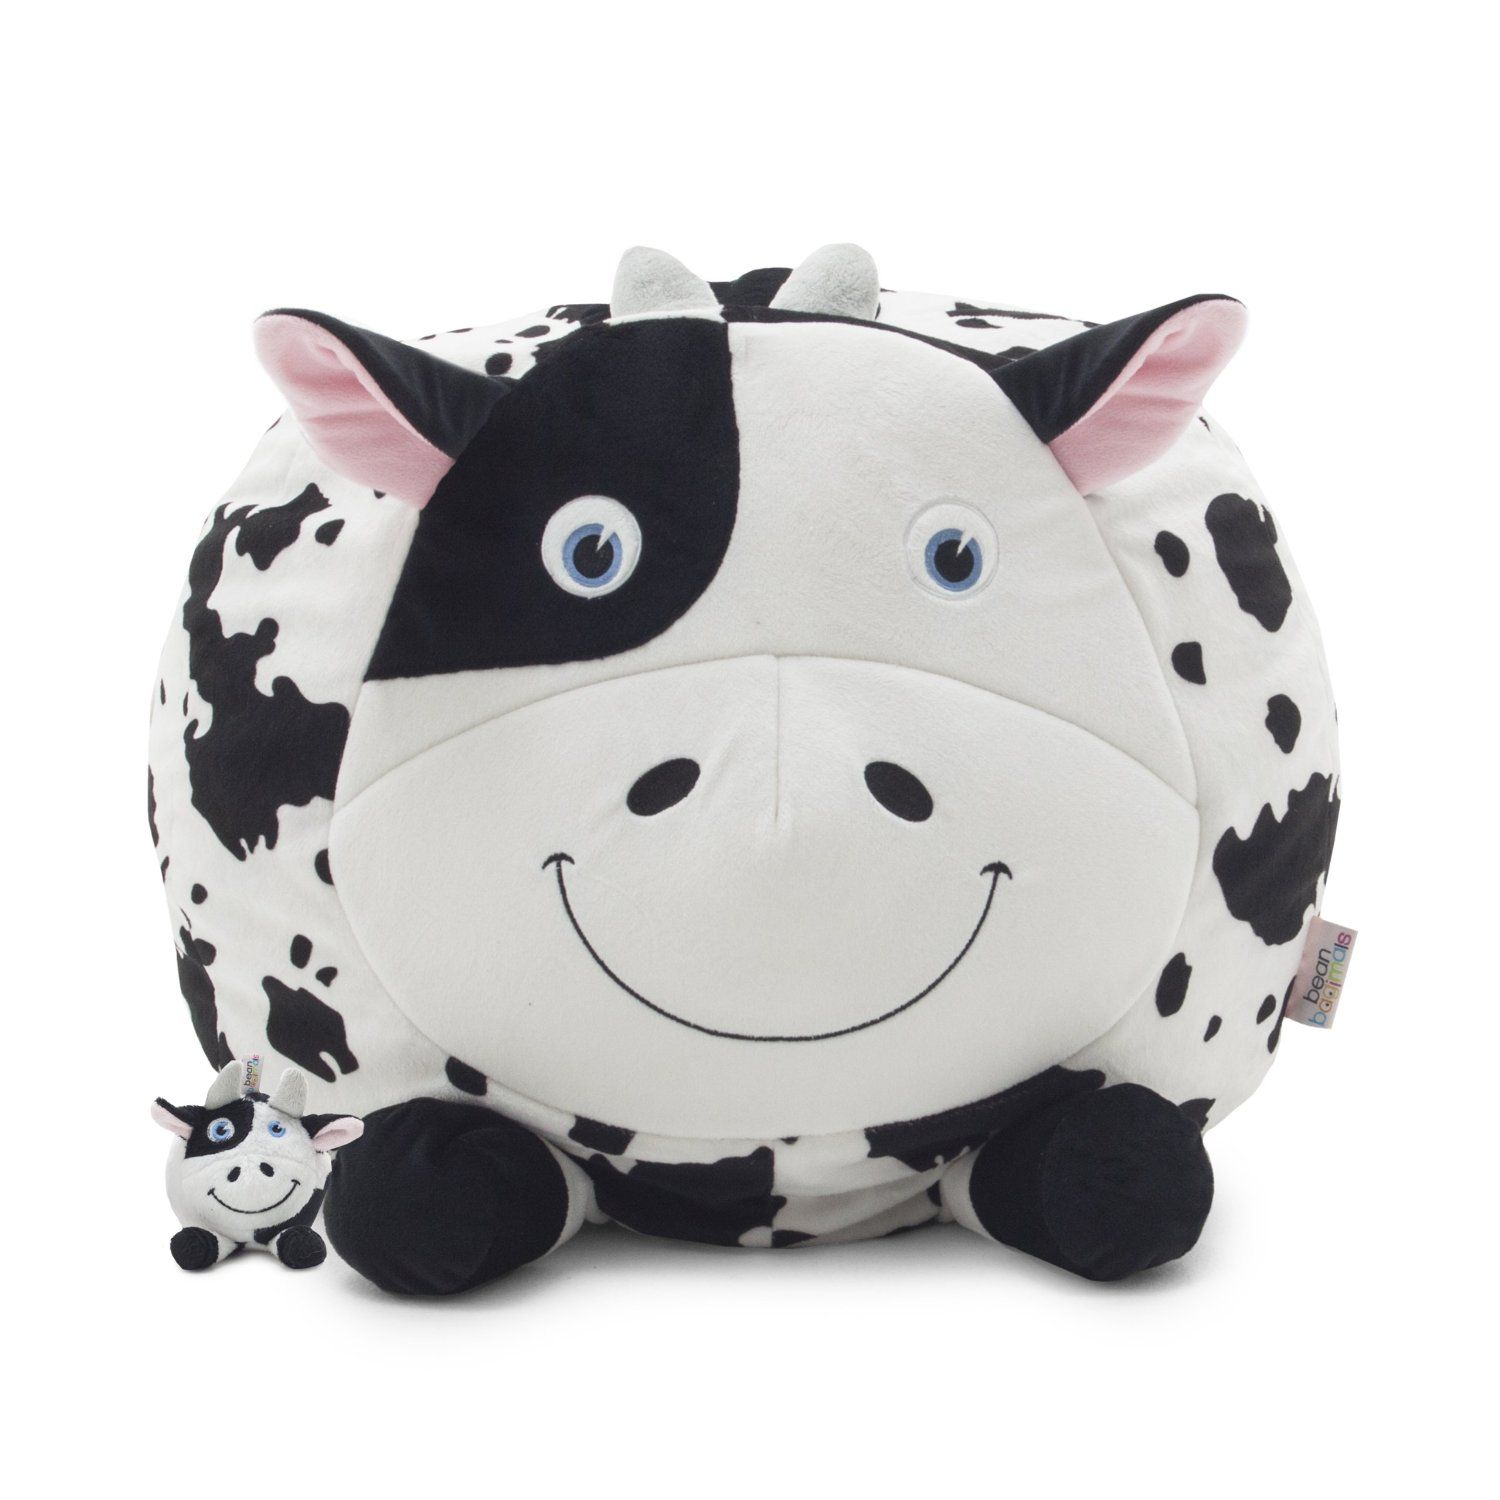 14 fortable Animal Kids Bean Bag Chairs Collection Cute Black